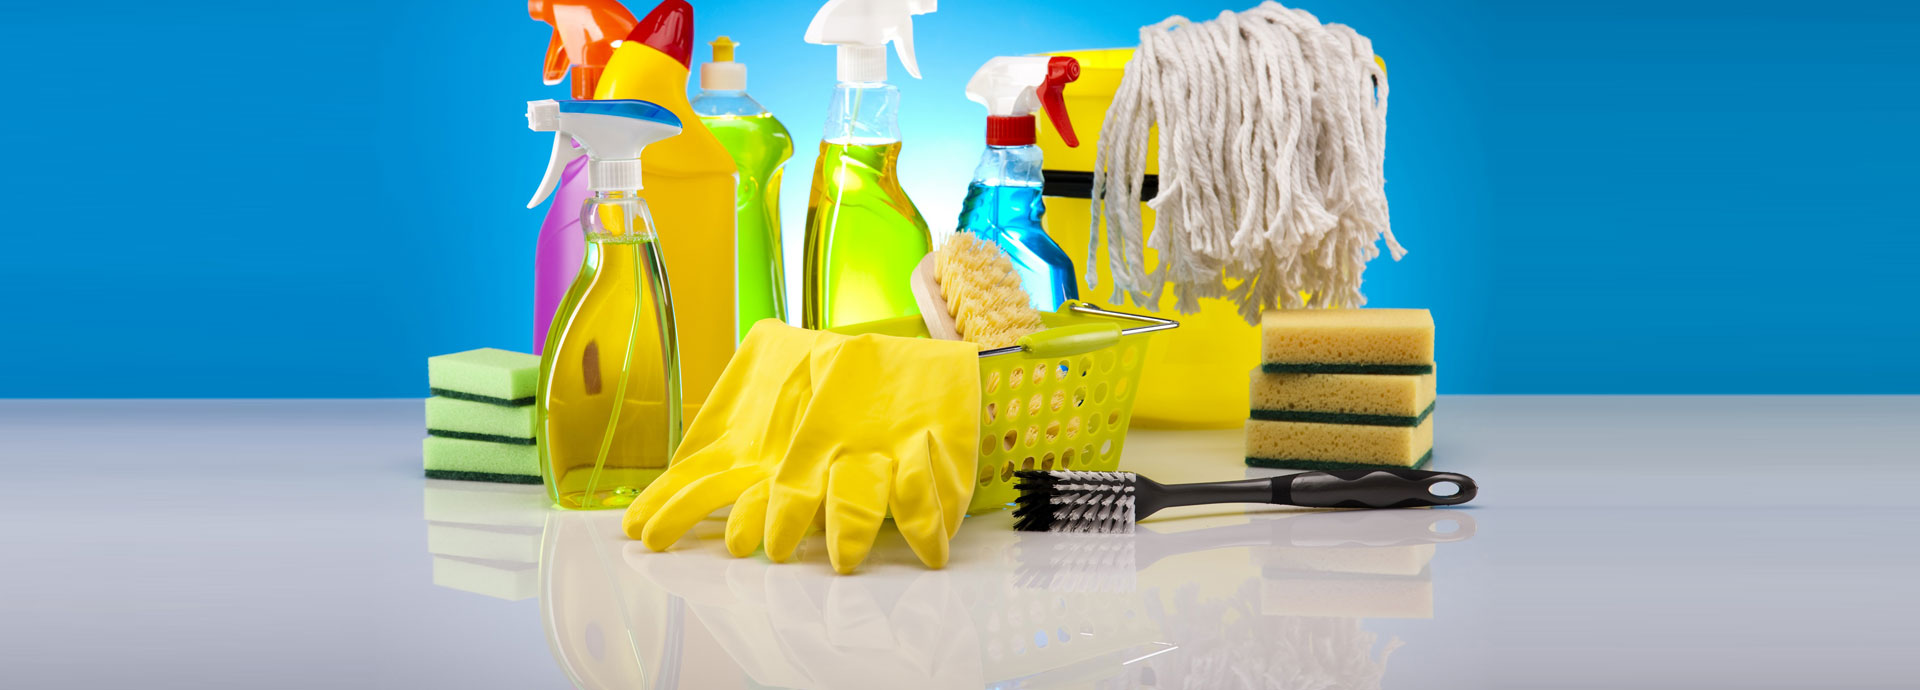 Abou Tus Just Cleaning Services